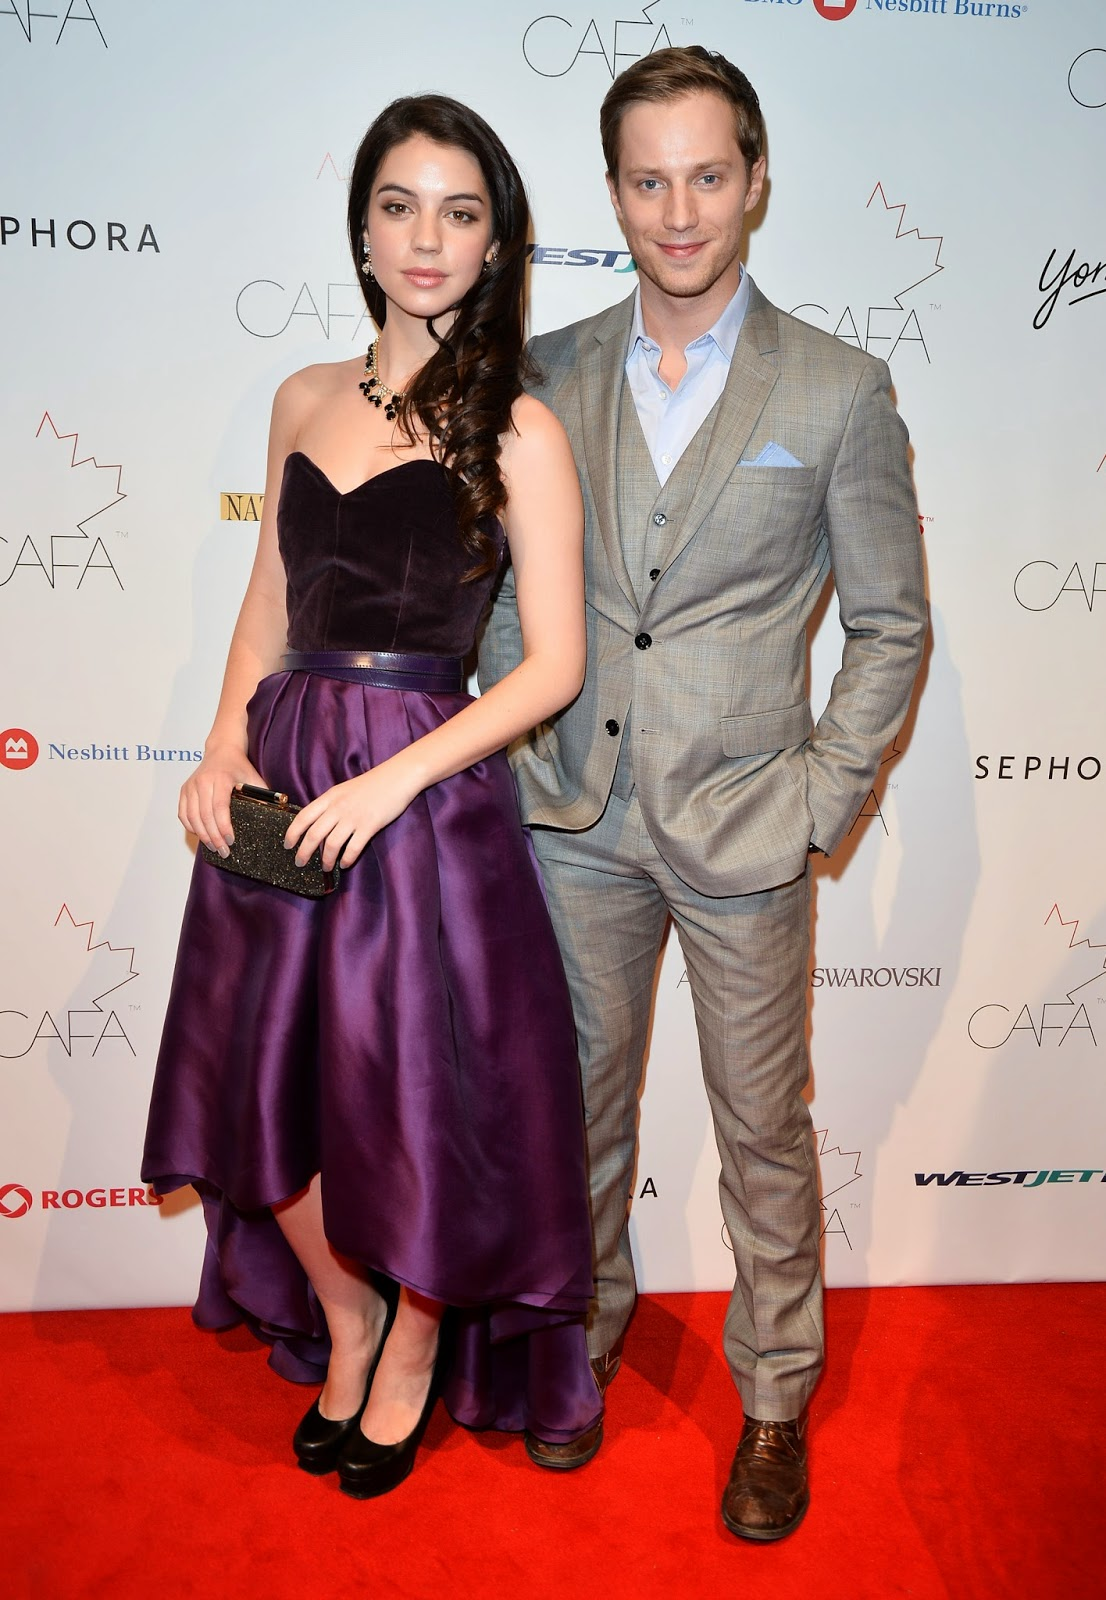 cafa, canadian arts ans fashion awards, adelaide kane, red carpet, teen wolf, reign